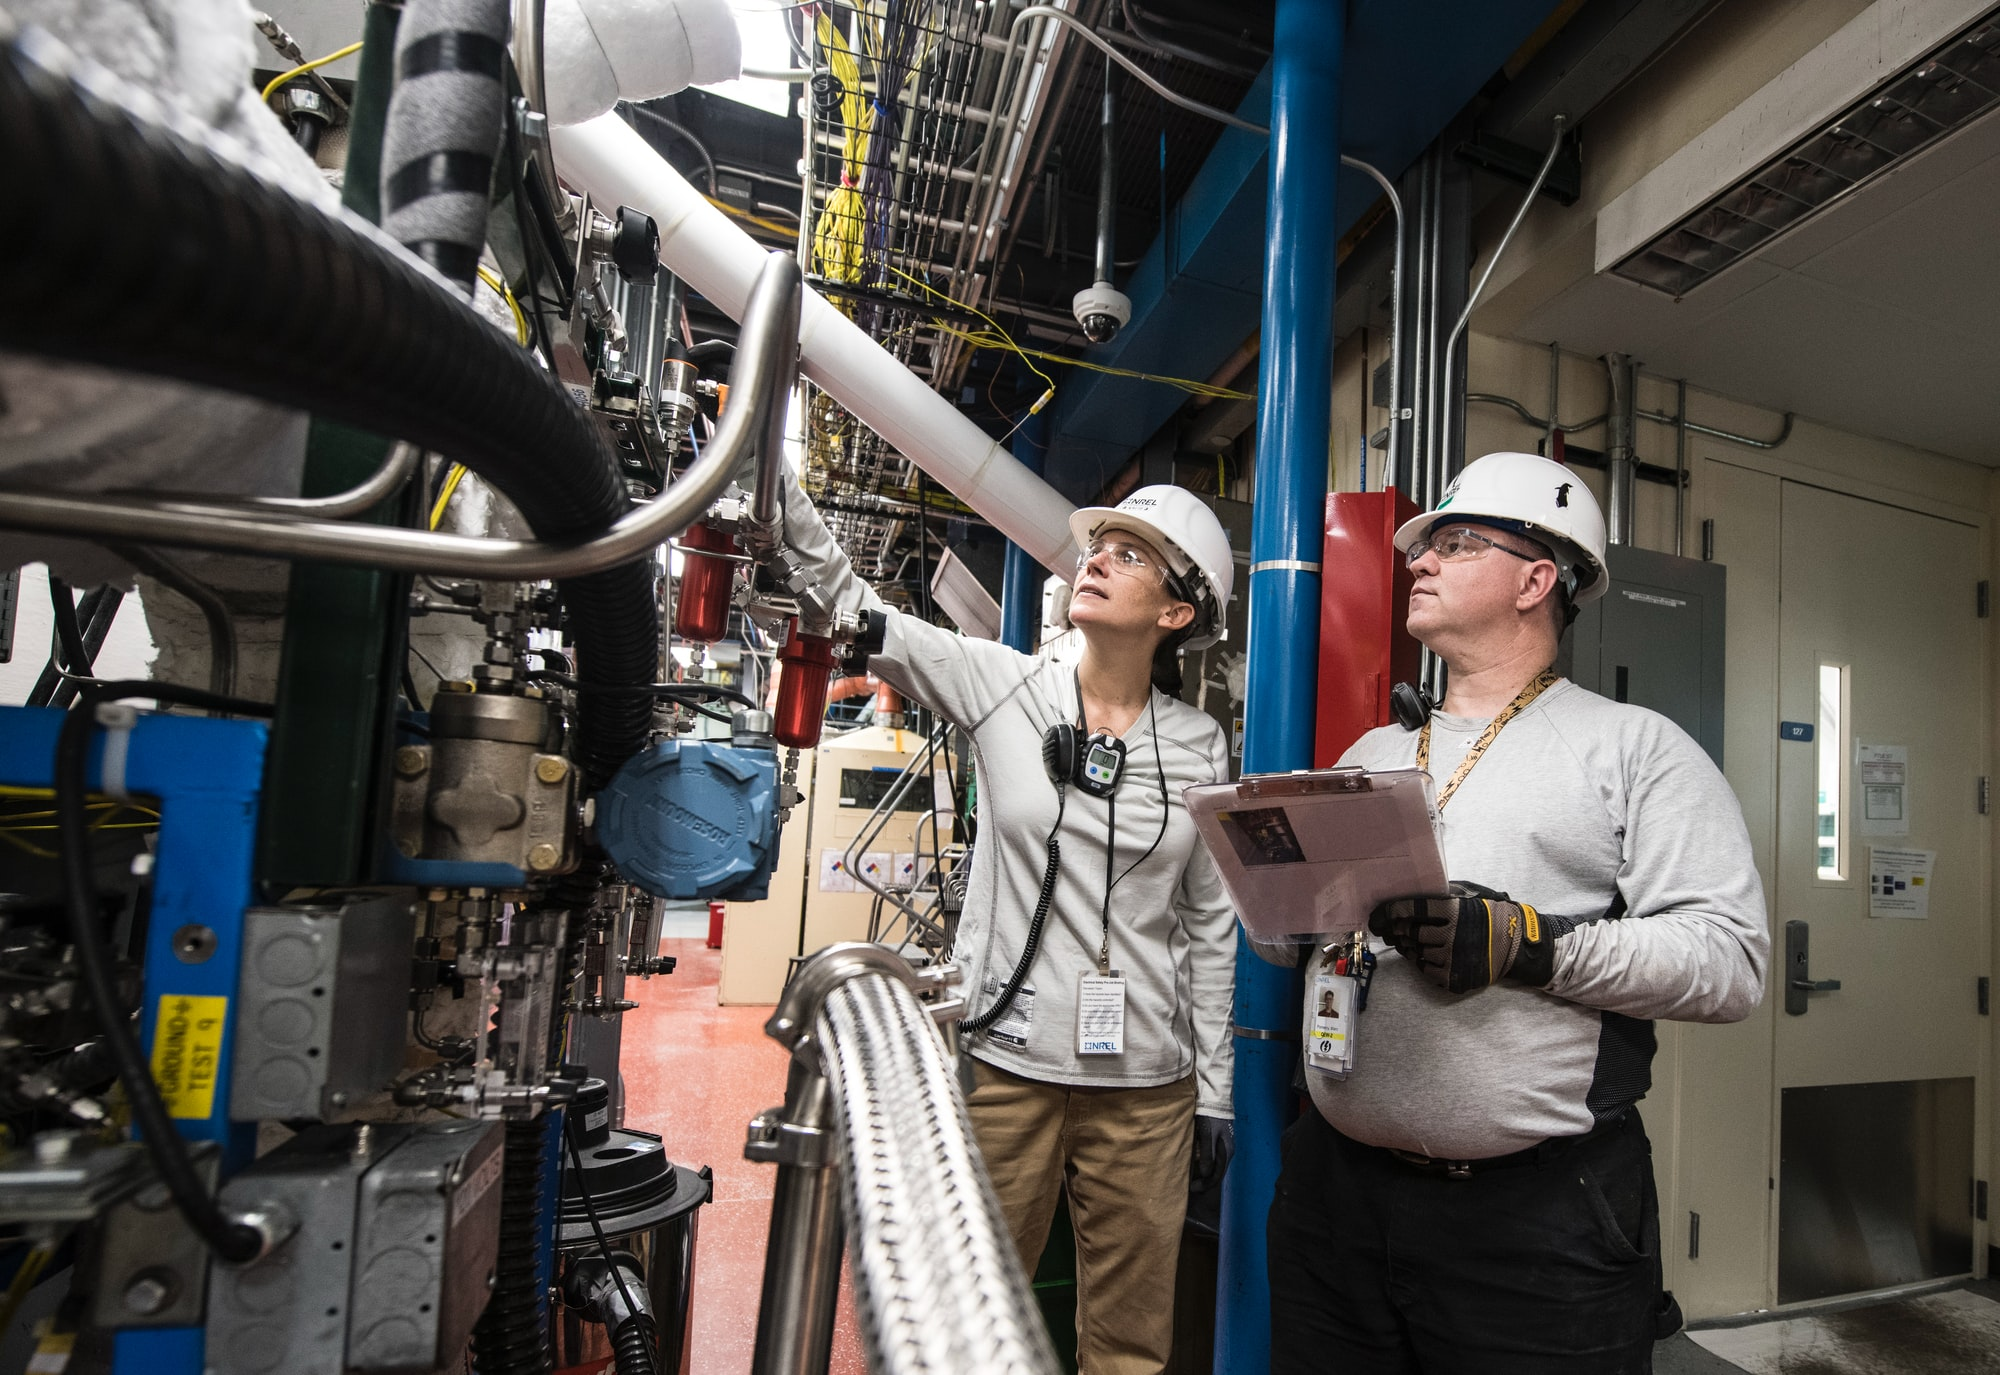 NREL Thermochemical Process/ Control Engineer and Research Technician work during a 48 hour Hot Test in Thermochemical User Facility Pilot Plant in the Field Test Laboratory Building (FTLB).